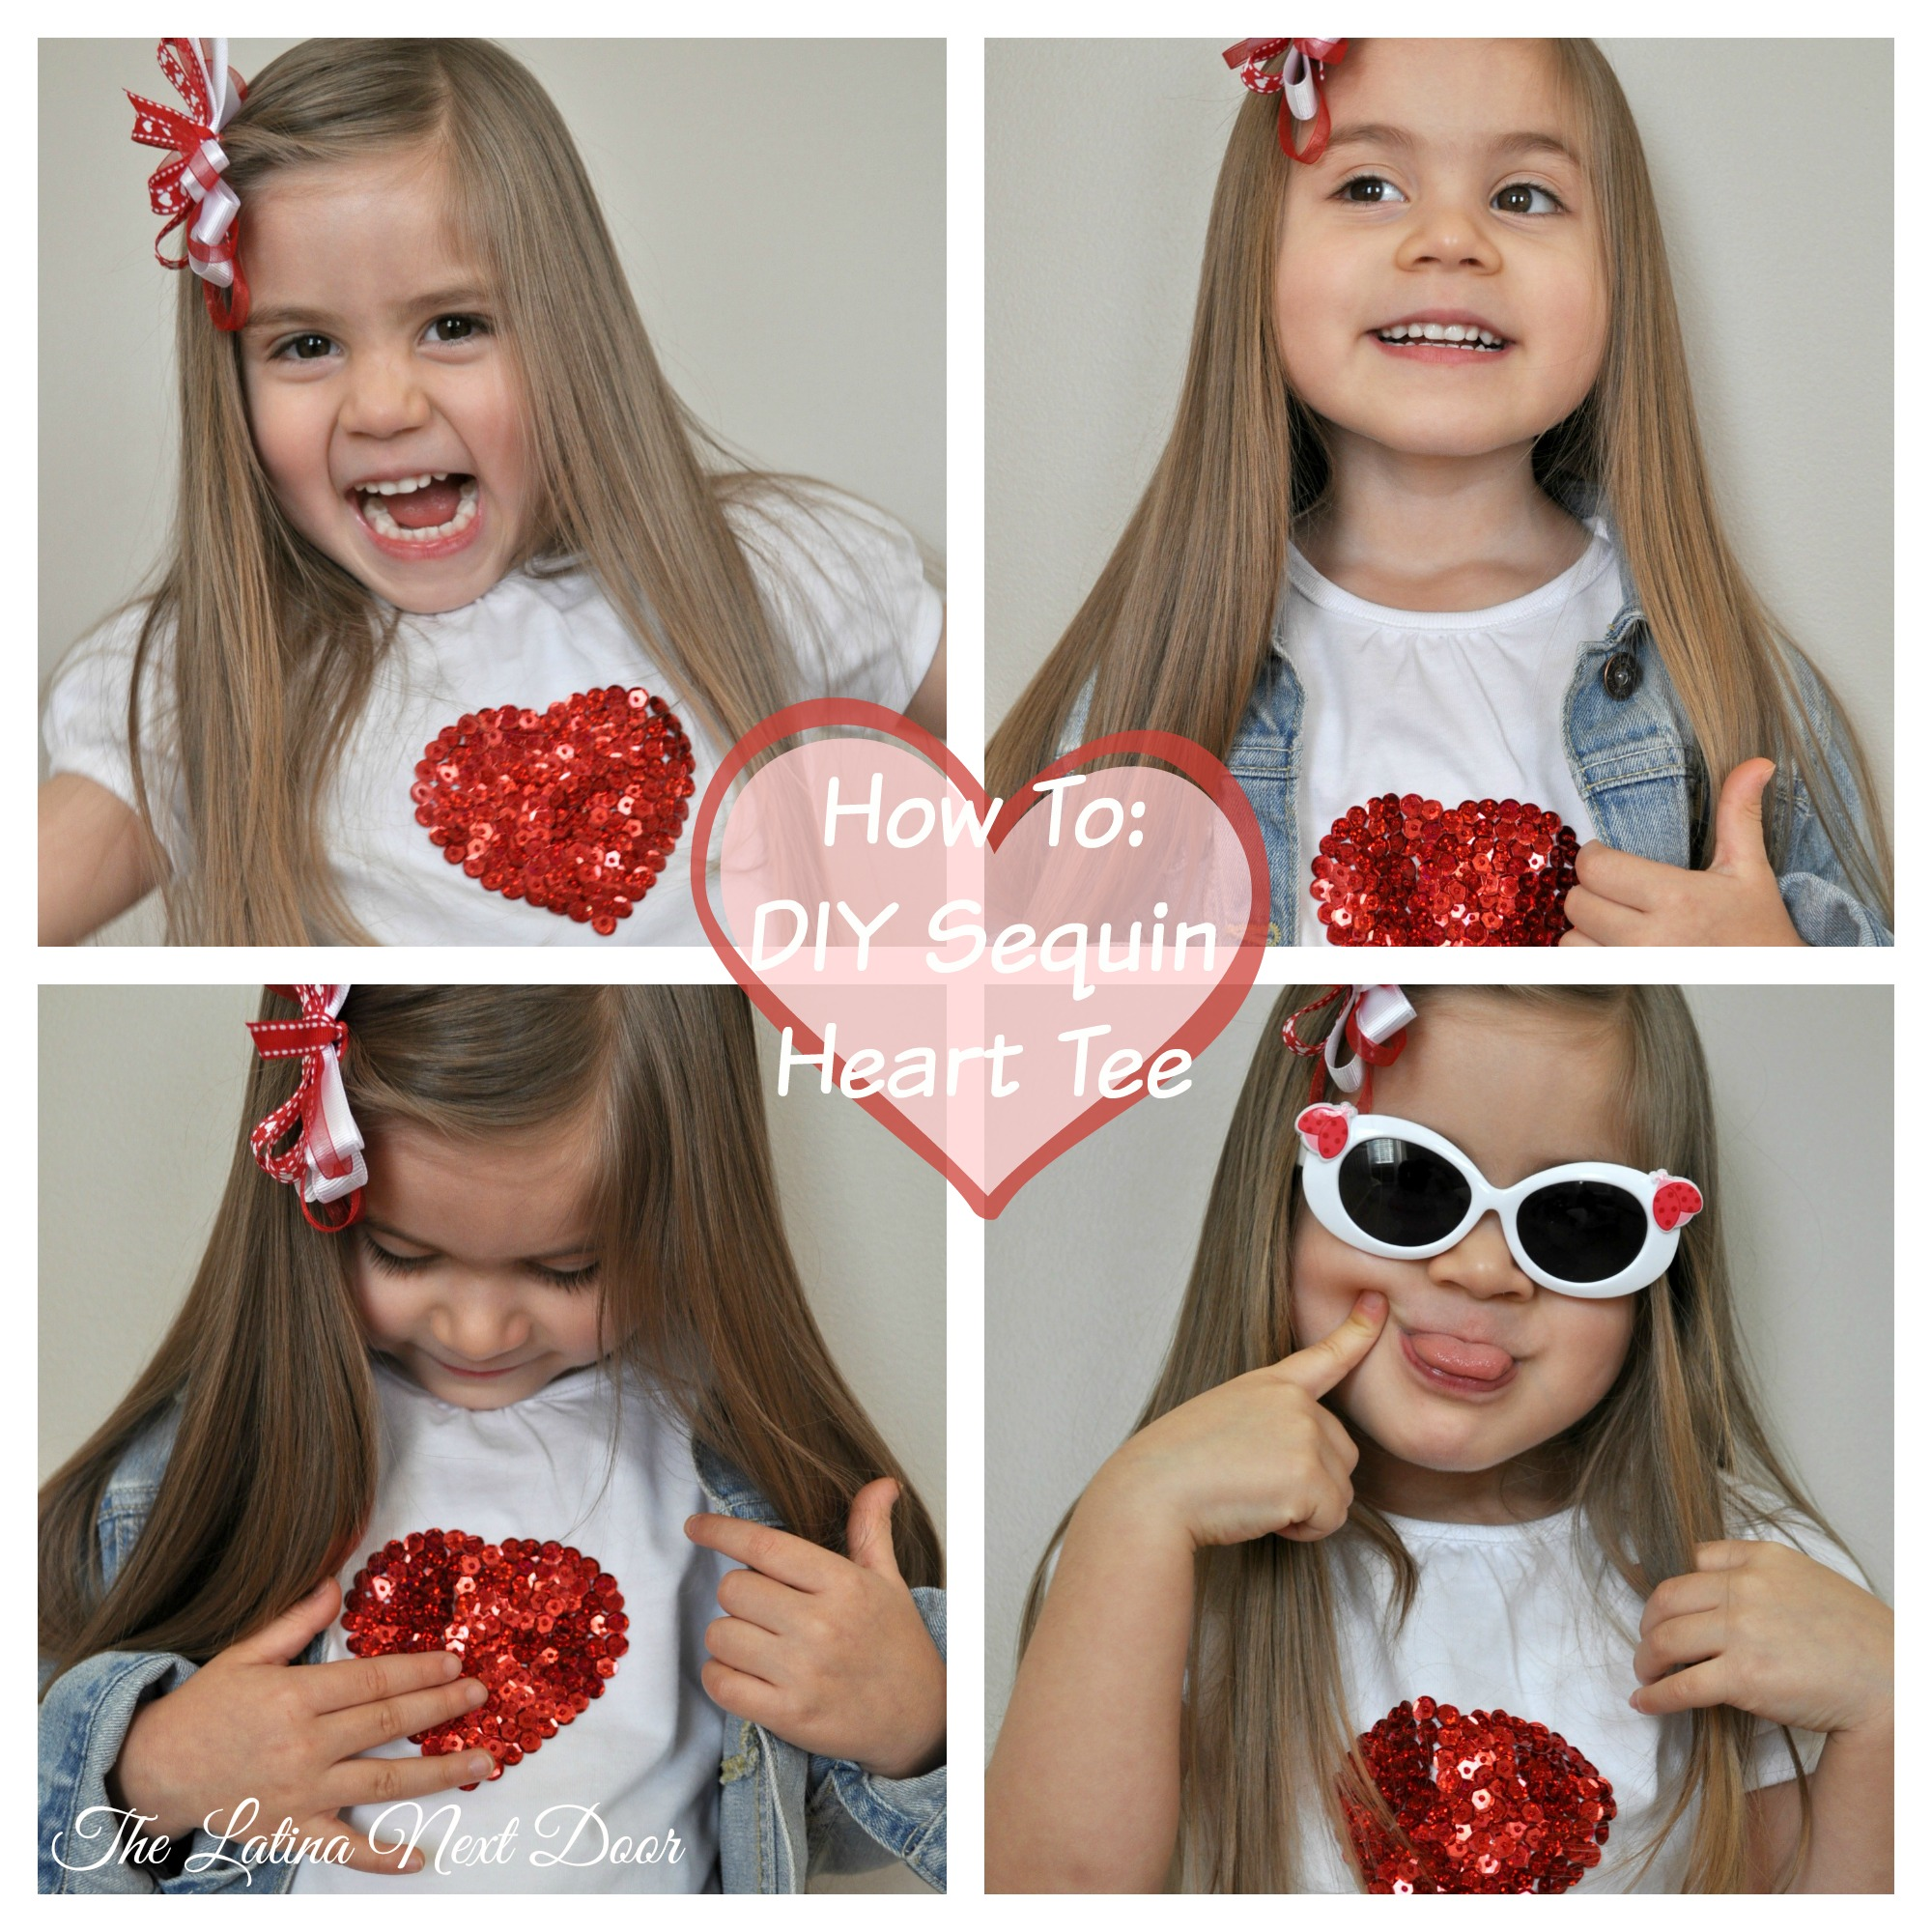 Finished DIY Sequined Heart Tee Collage DIY Sequin Heart T shirt Tutorial for Valentines Day